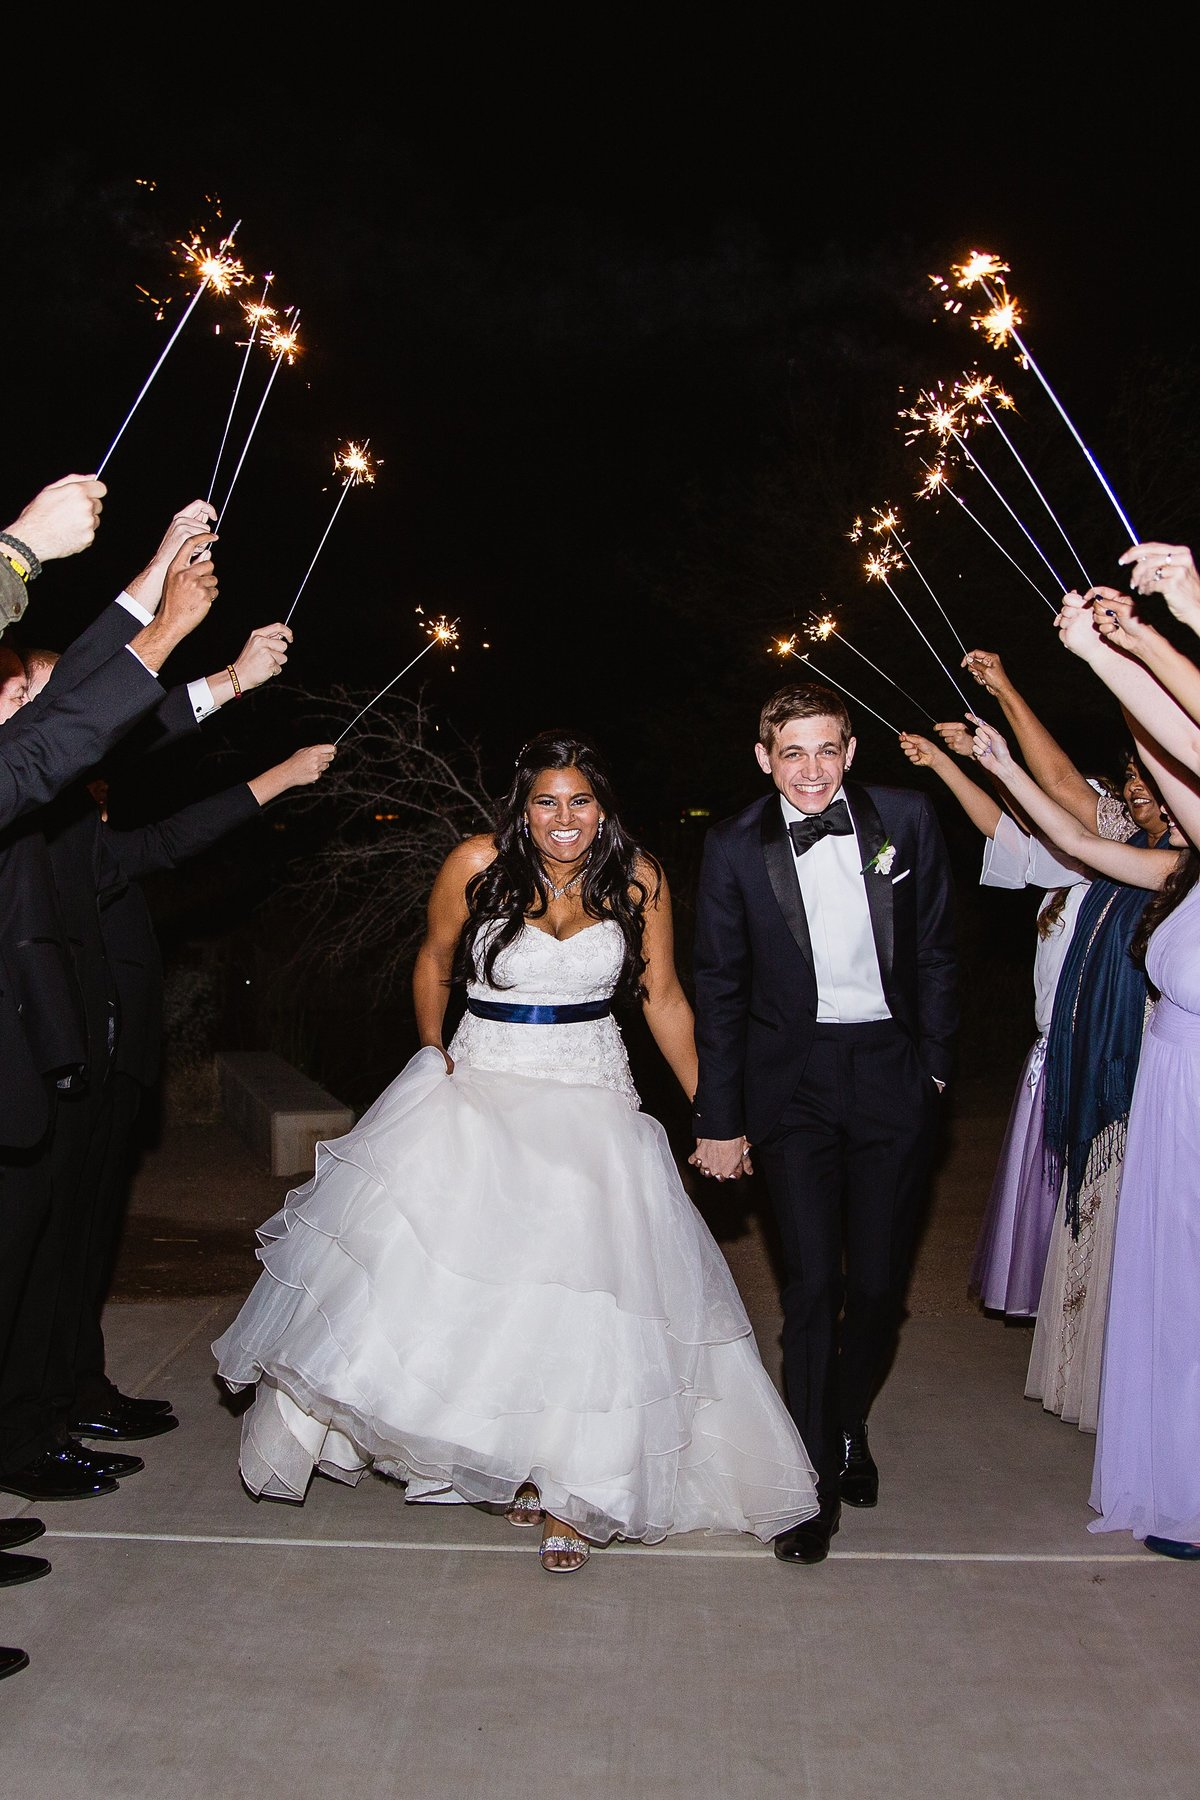 Bride and groom during their sparkler exit by Phoenix wedding photographers PMA Photography.